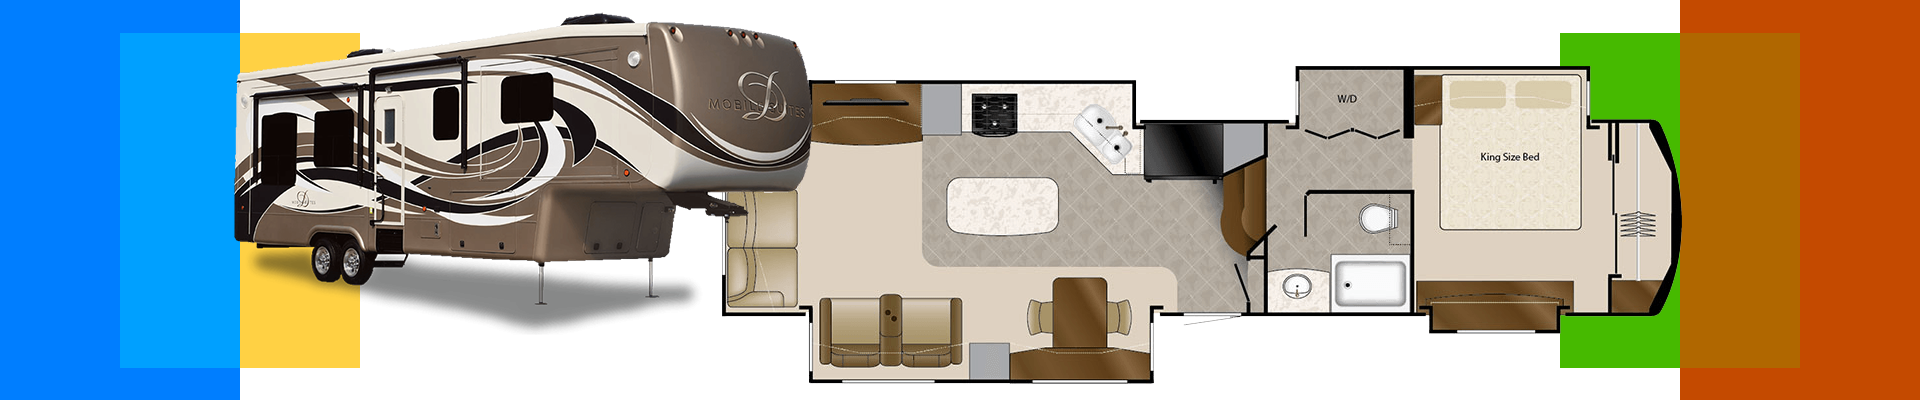 Camp all year round in the four-season Mobile Suites RV